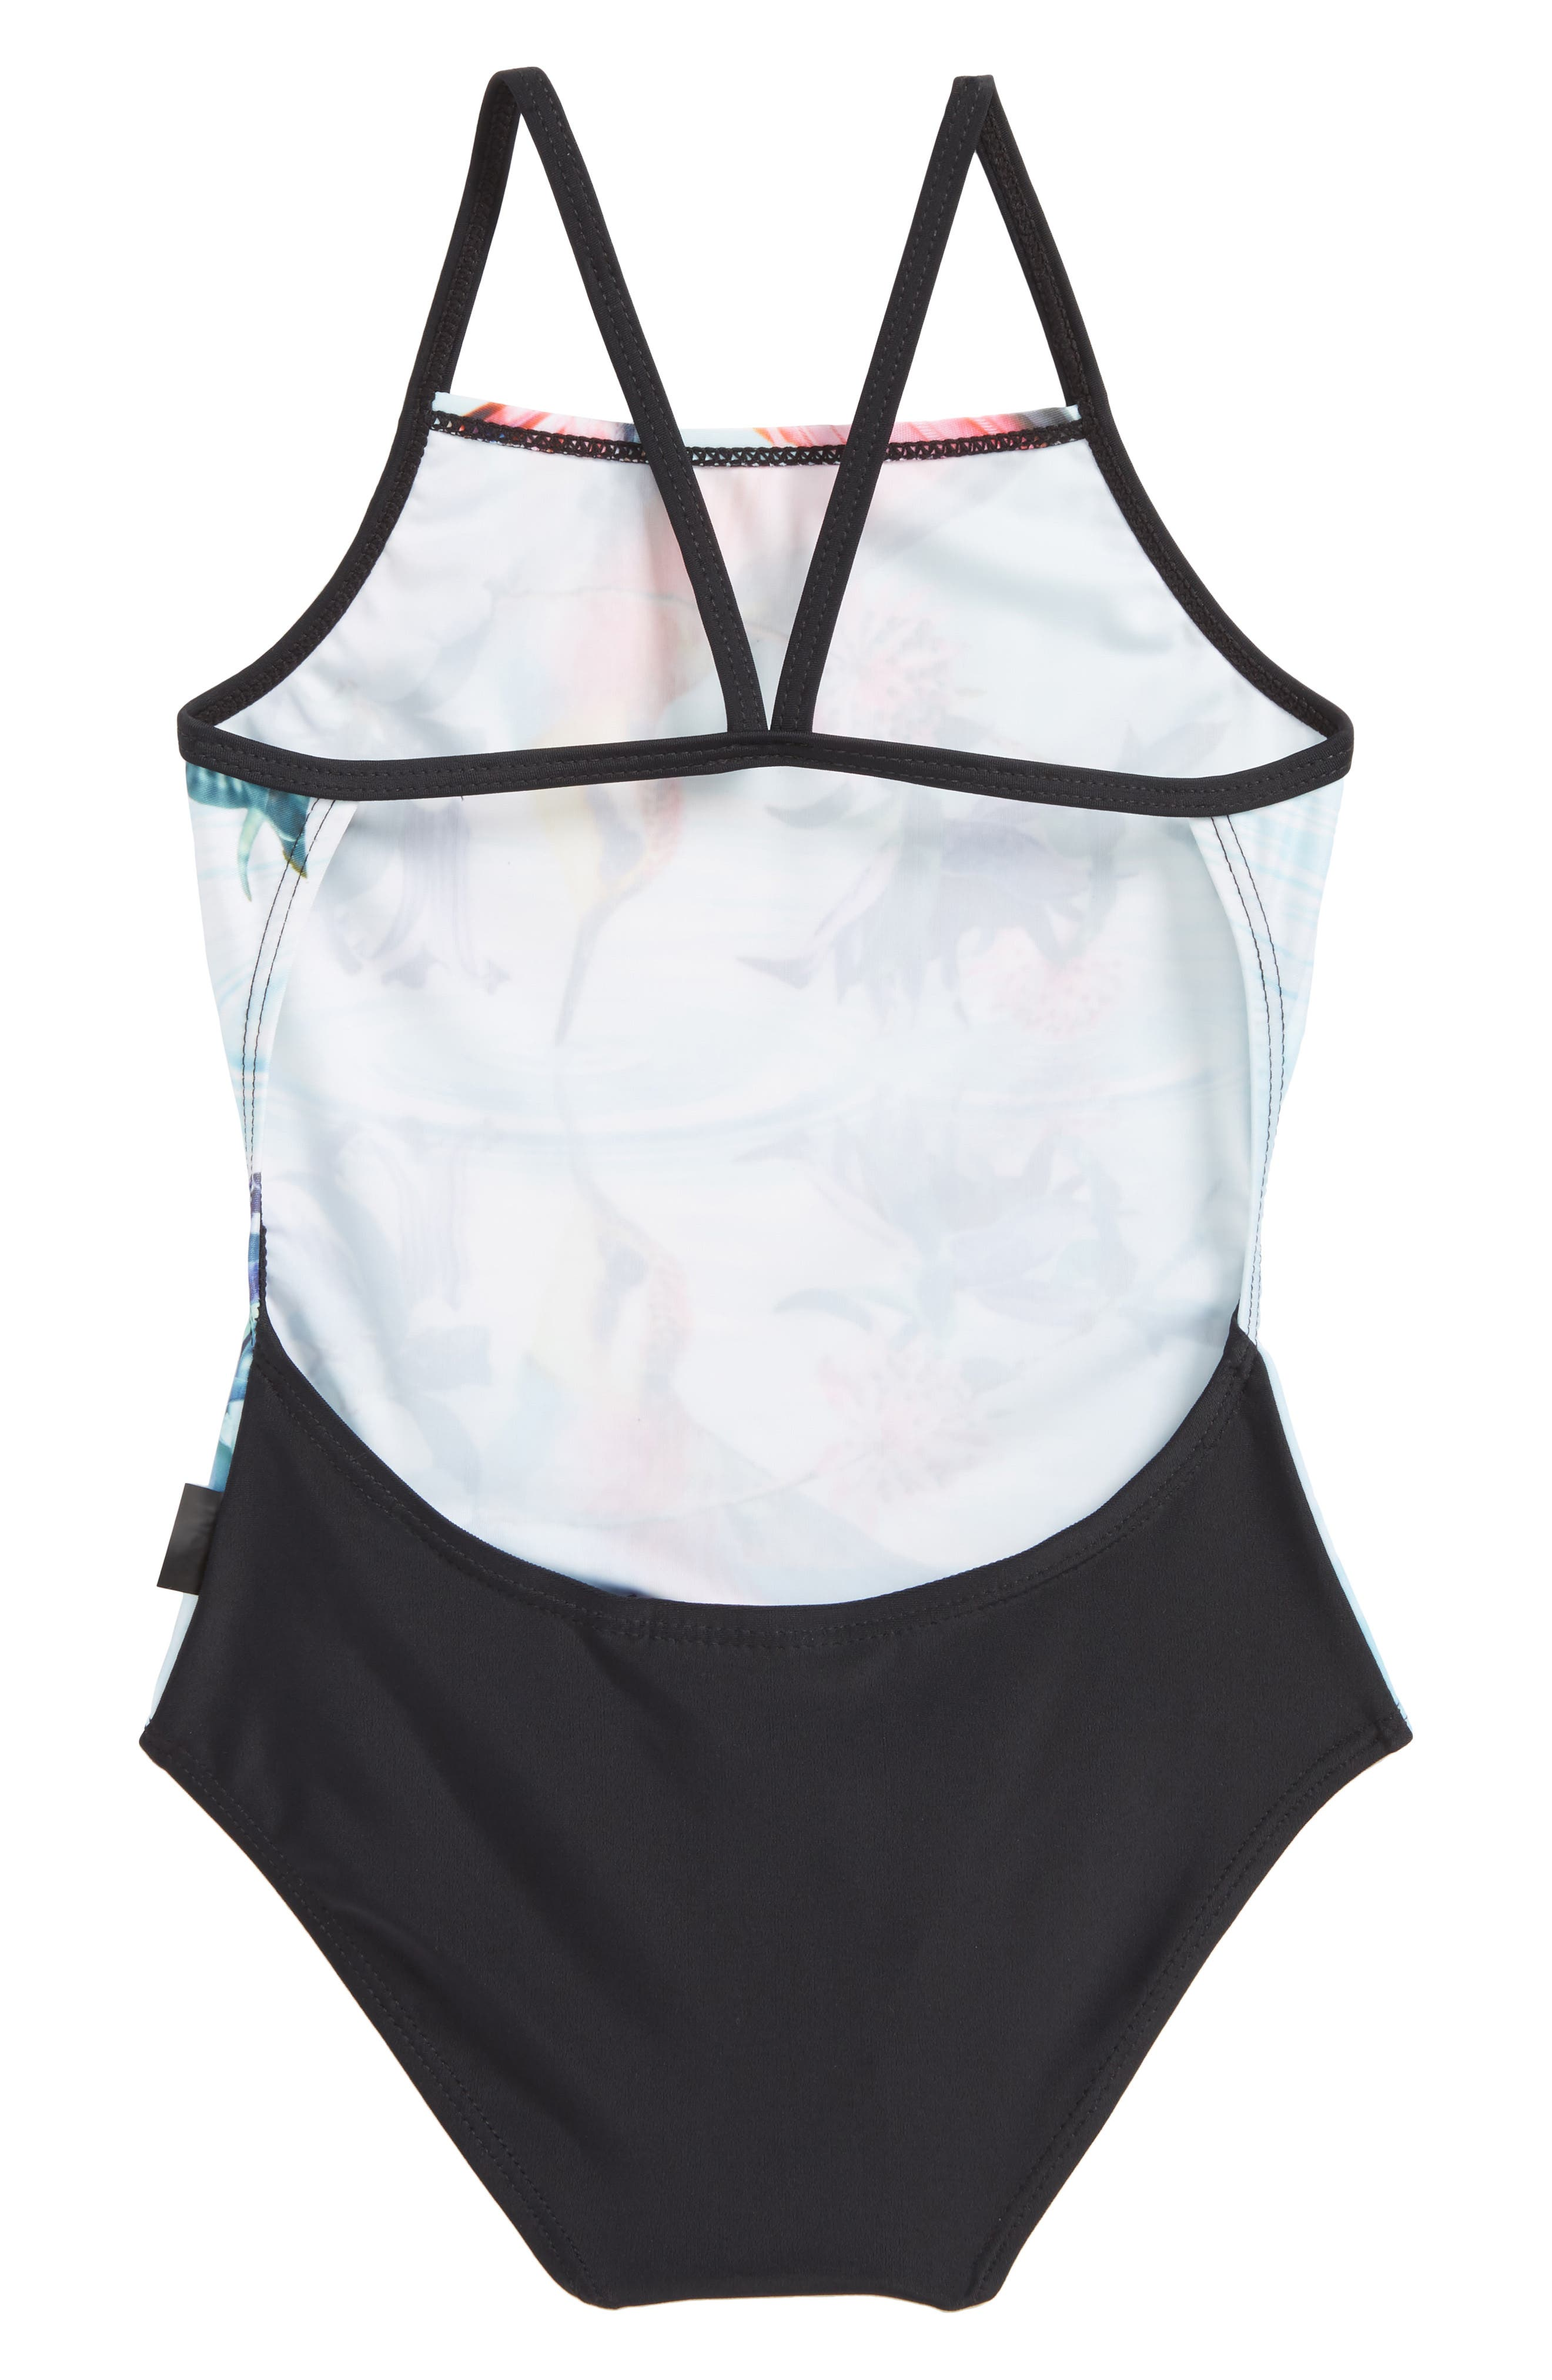 Neda One-Piece Swimsuit,                             Alternate thumbnail 2, color,                             Reflection